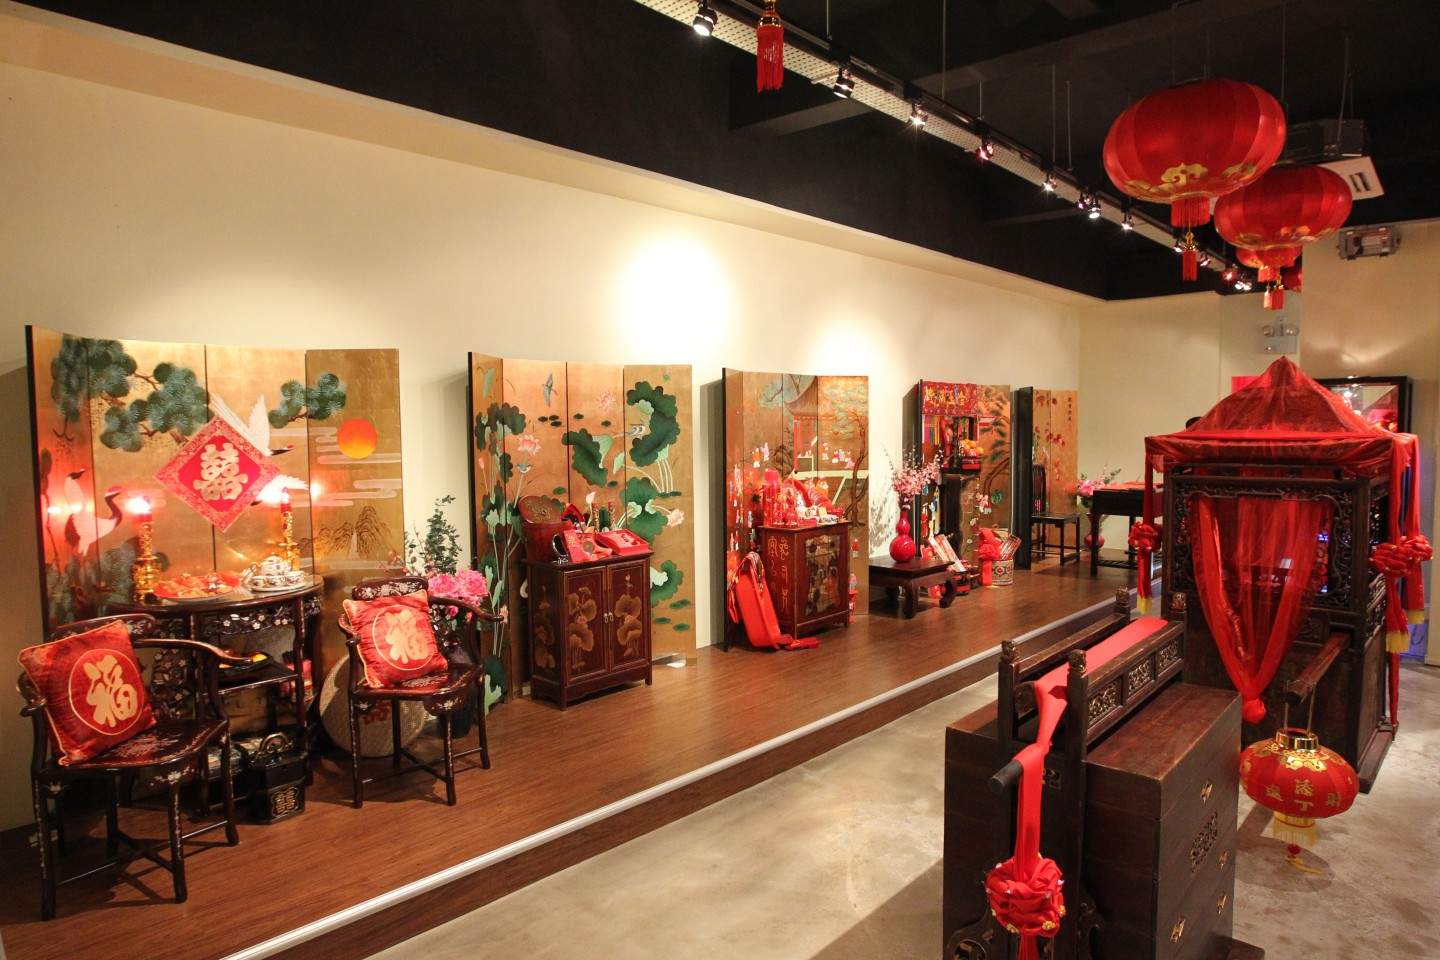 Exhibition pieces showcasing antique wedding decorations and a Chinese wedding sedan chair. (SPH)